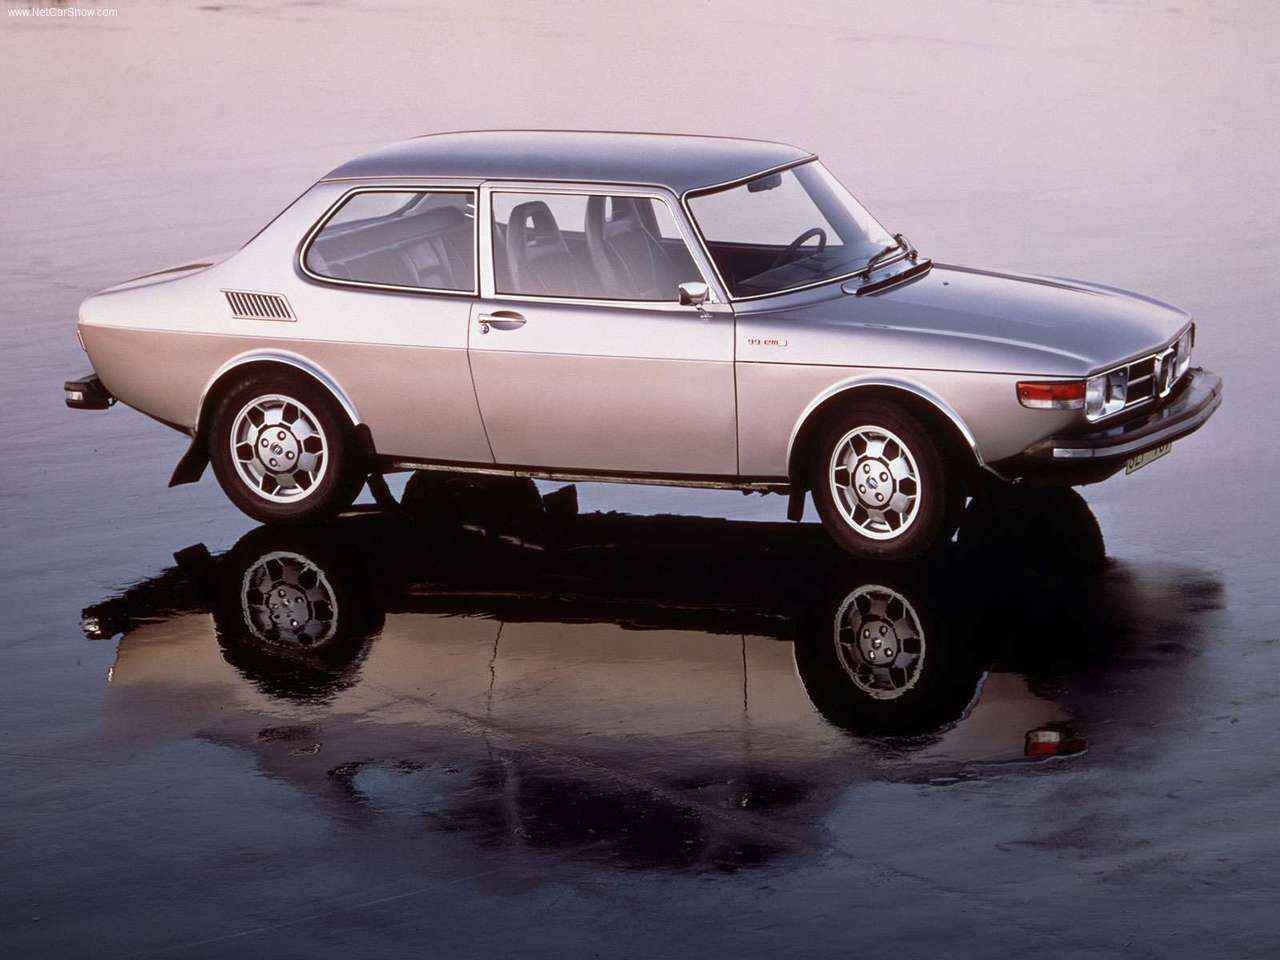 Saab 99 picture # 02 of 11, Front Angle, MY 1976, 1280x960